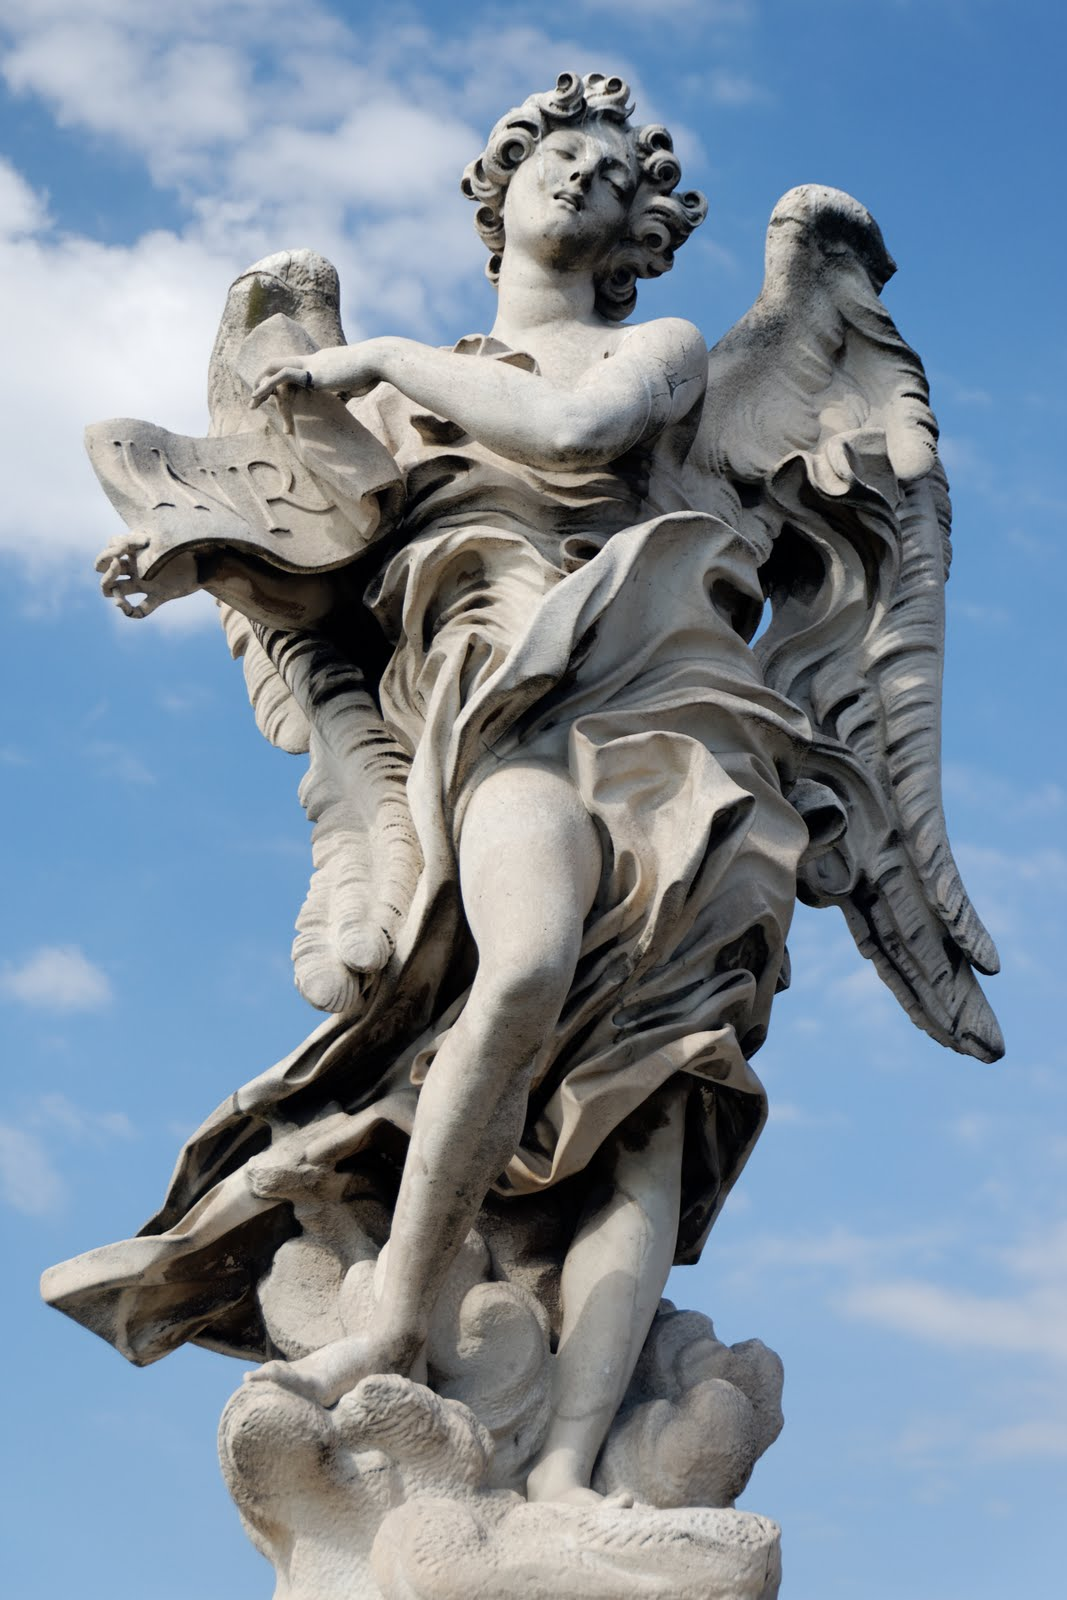 bernini and the statues of christian He worked on this statue between the years of 1616 and 1617 this features a biblical tale of the christian martyr st sebastian pinned to a tree, with his flesh pierced and filled with arrows, which was his punishment of death.